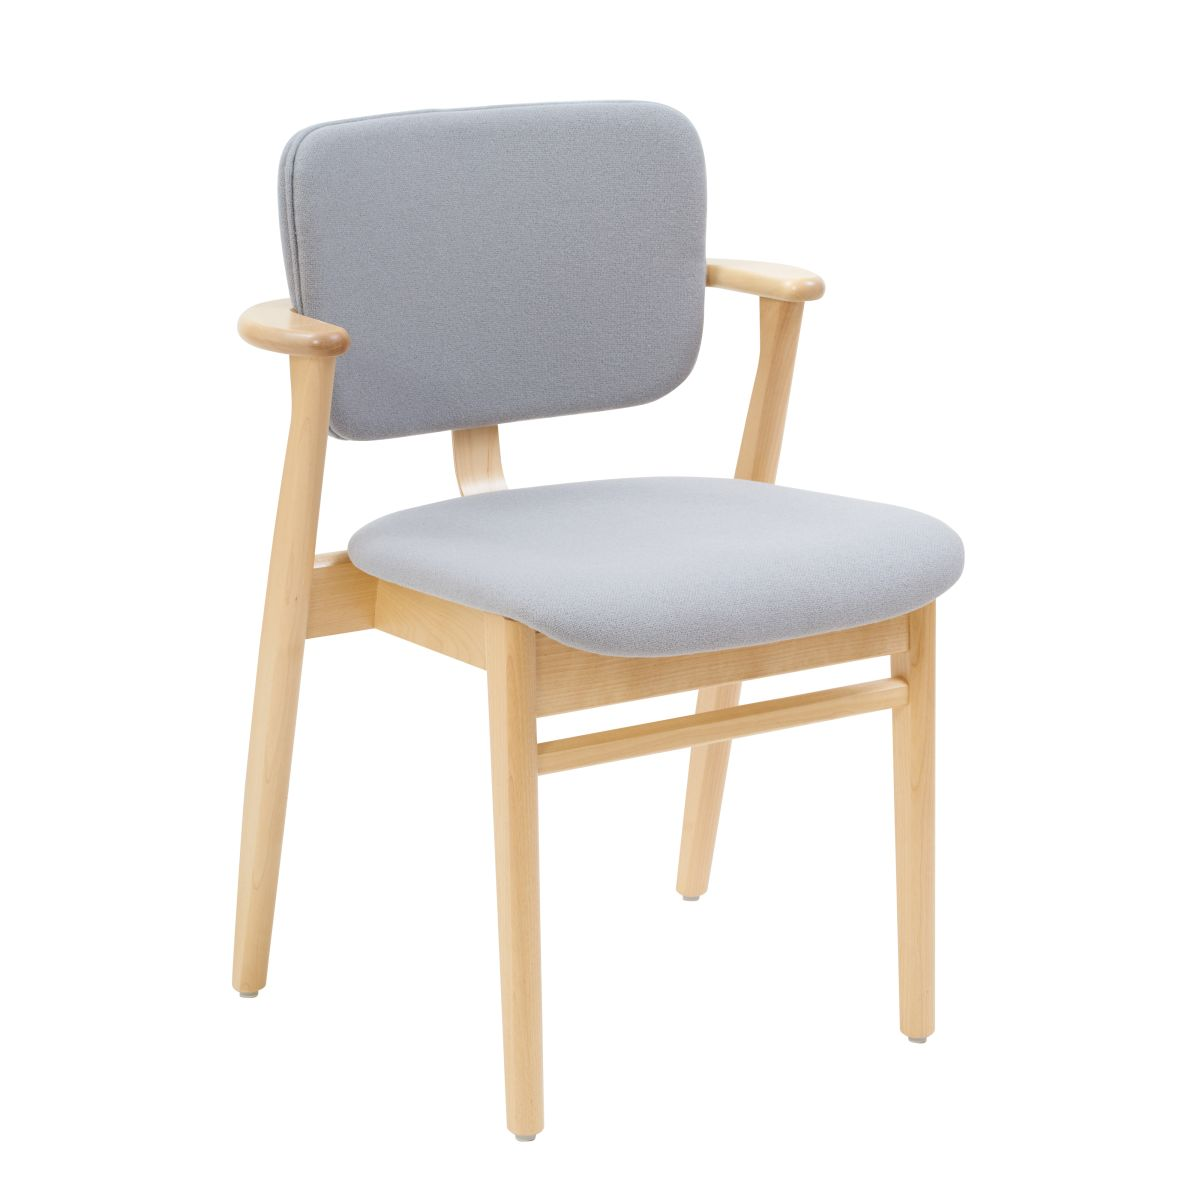 Domus Chair clear laquered birch_seat back fabric grey